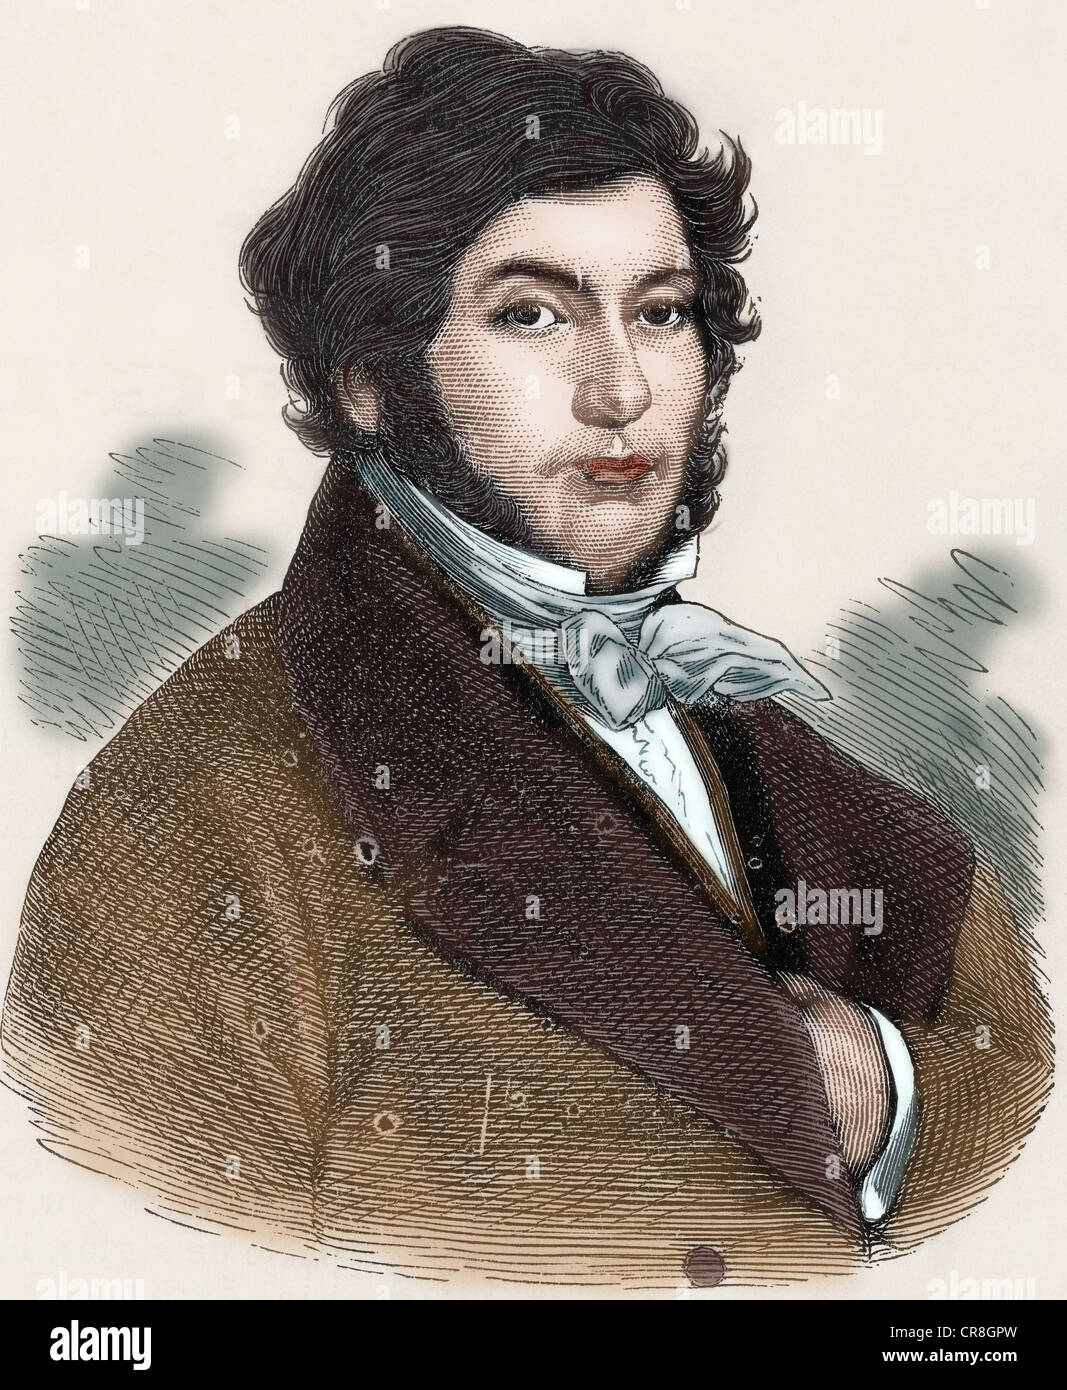 Jean-François Champollion (1790-1832). French classical scholar, decipherer of the Egyptian hieroglyphs. - Stock Image